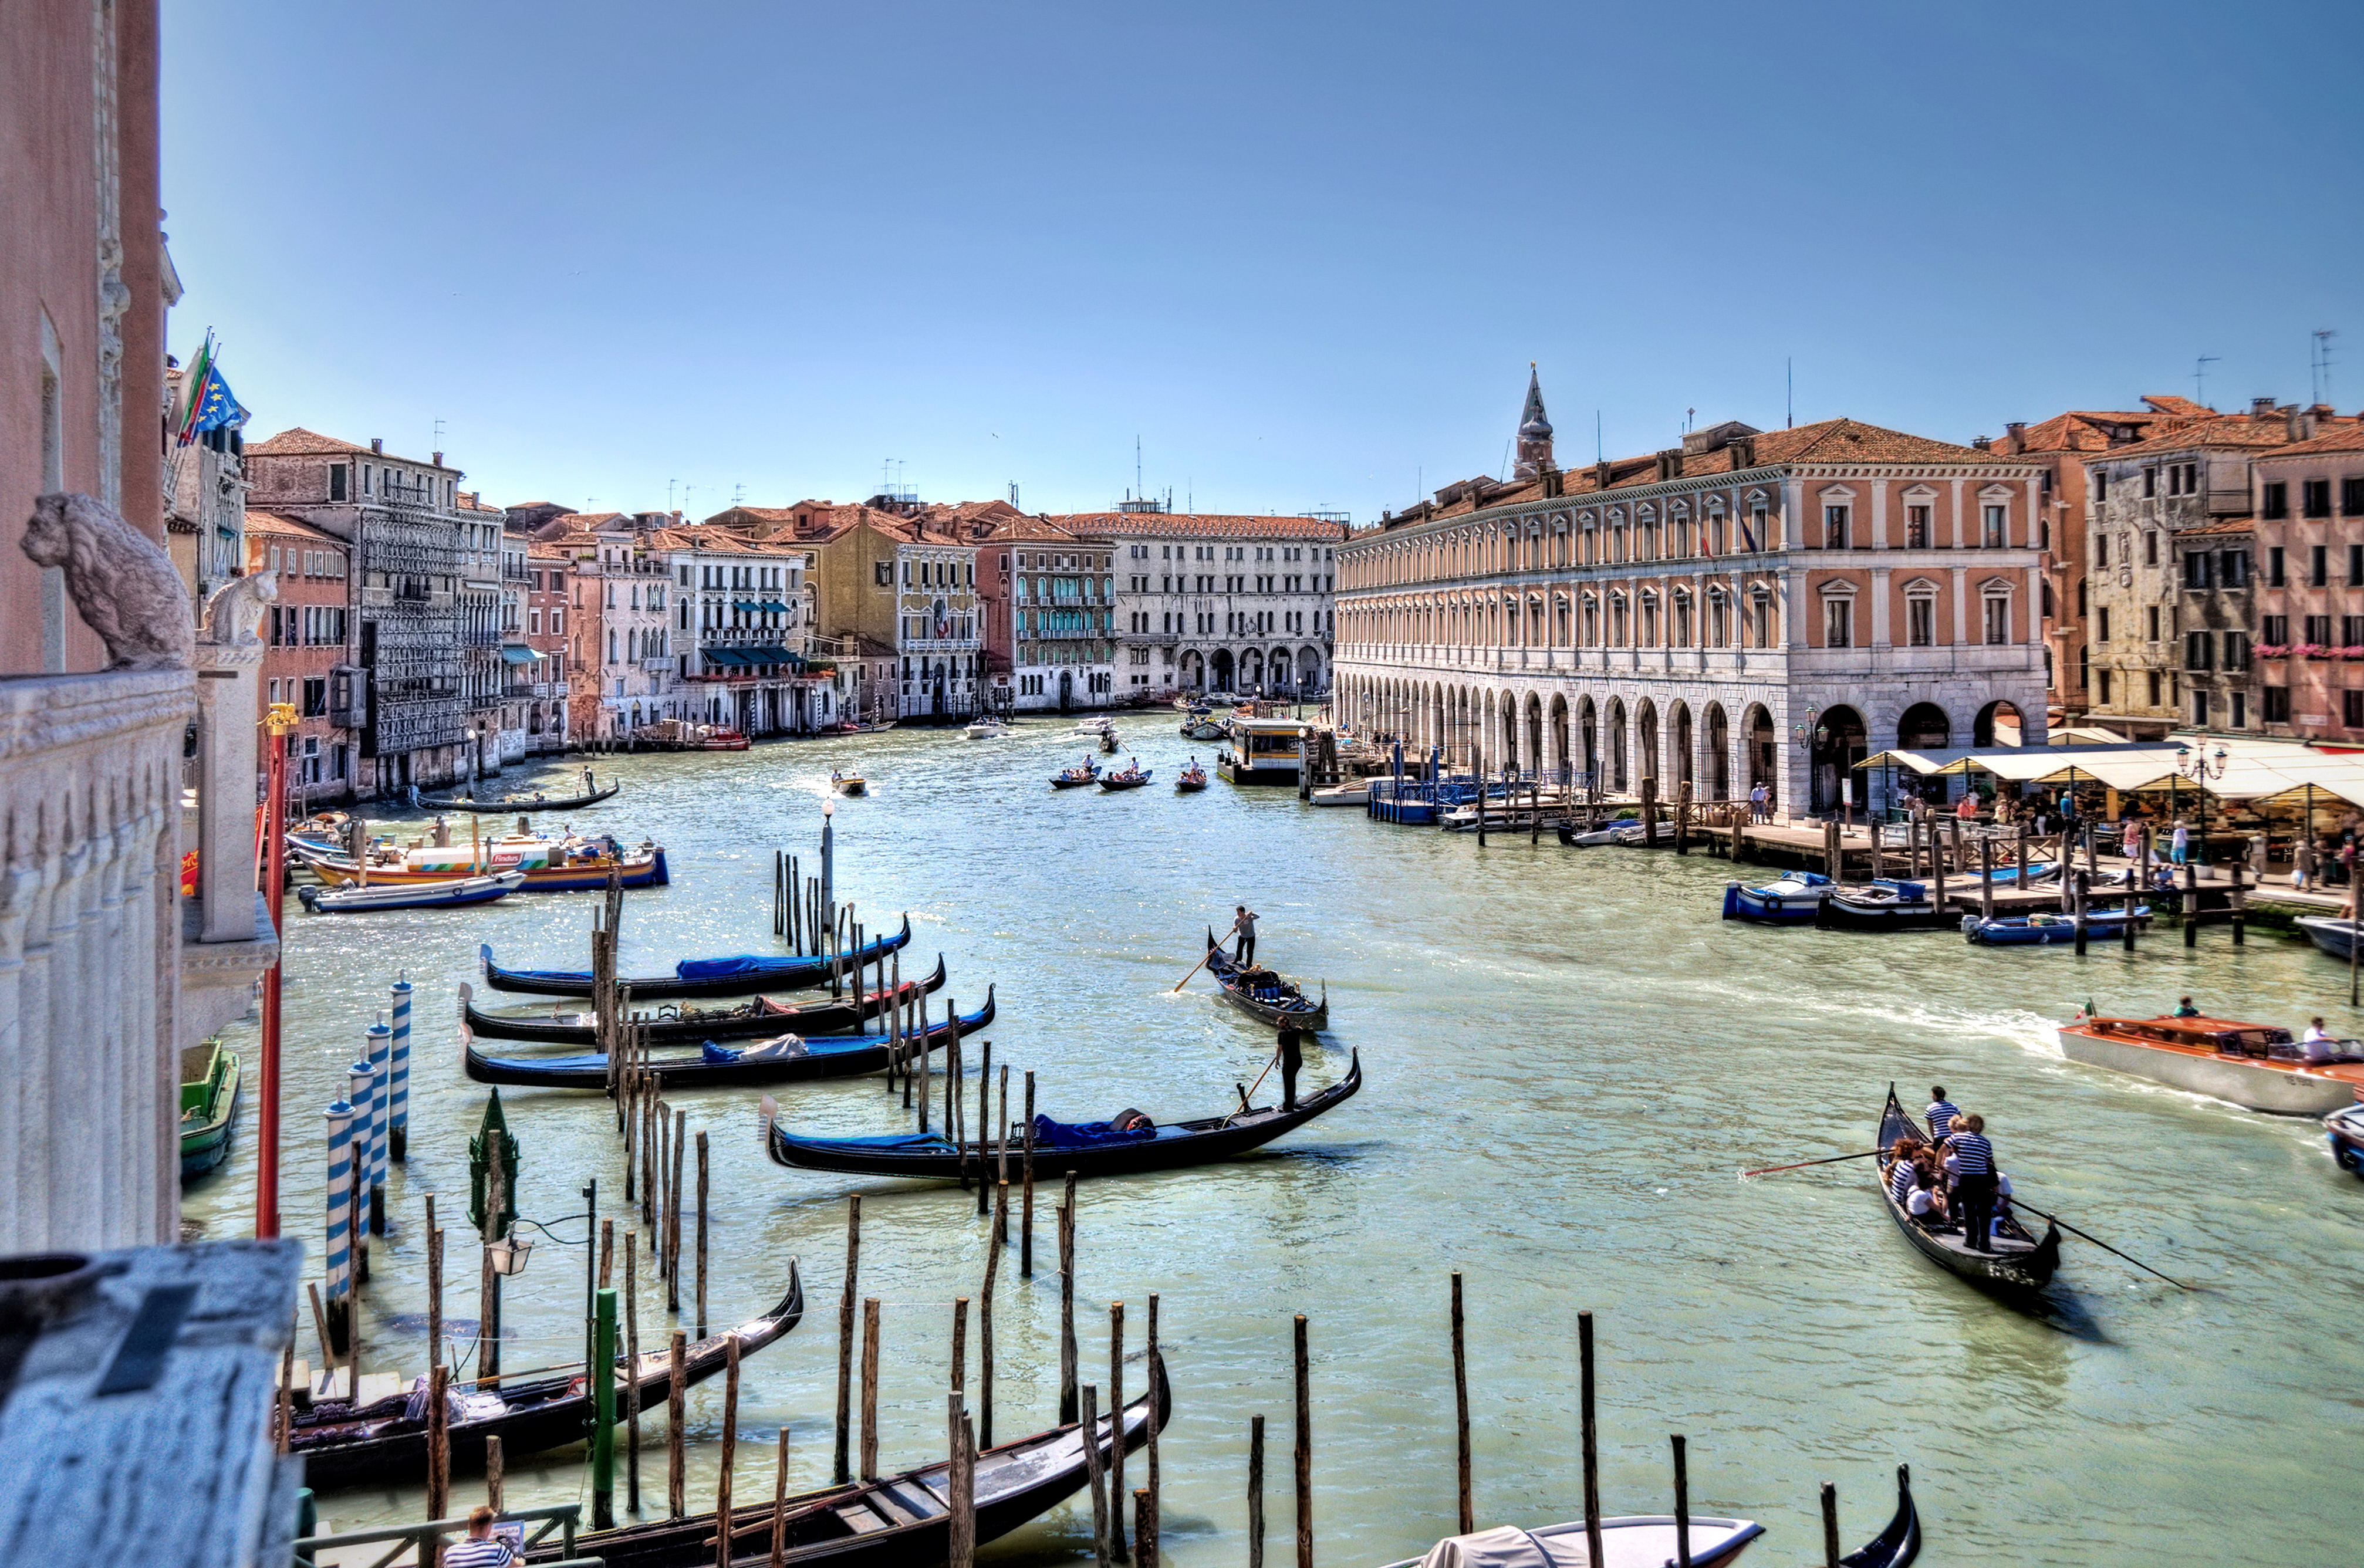 Grand canal with gondolas in Italy